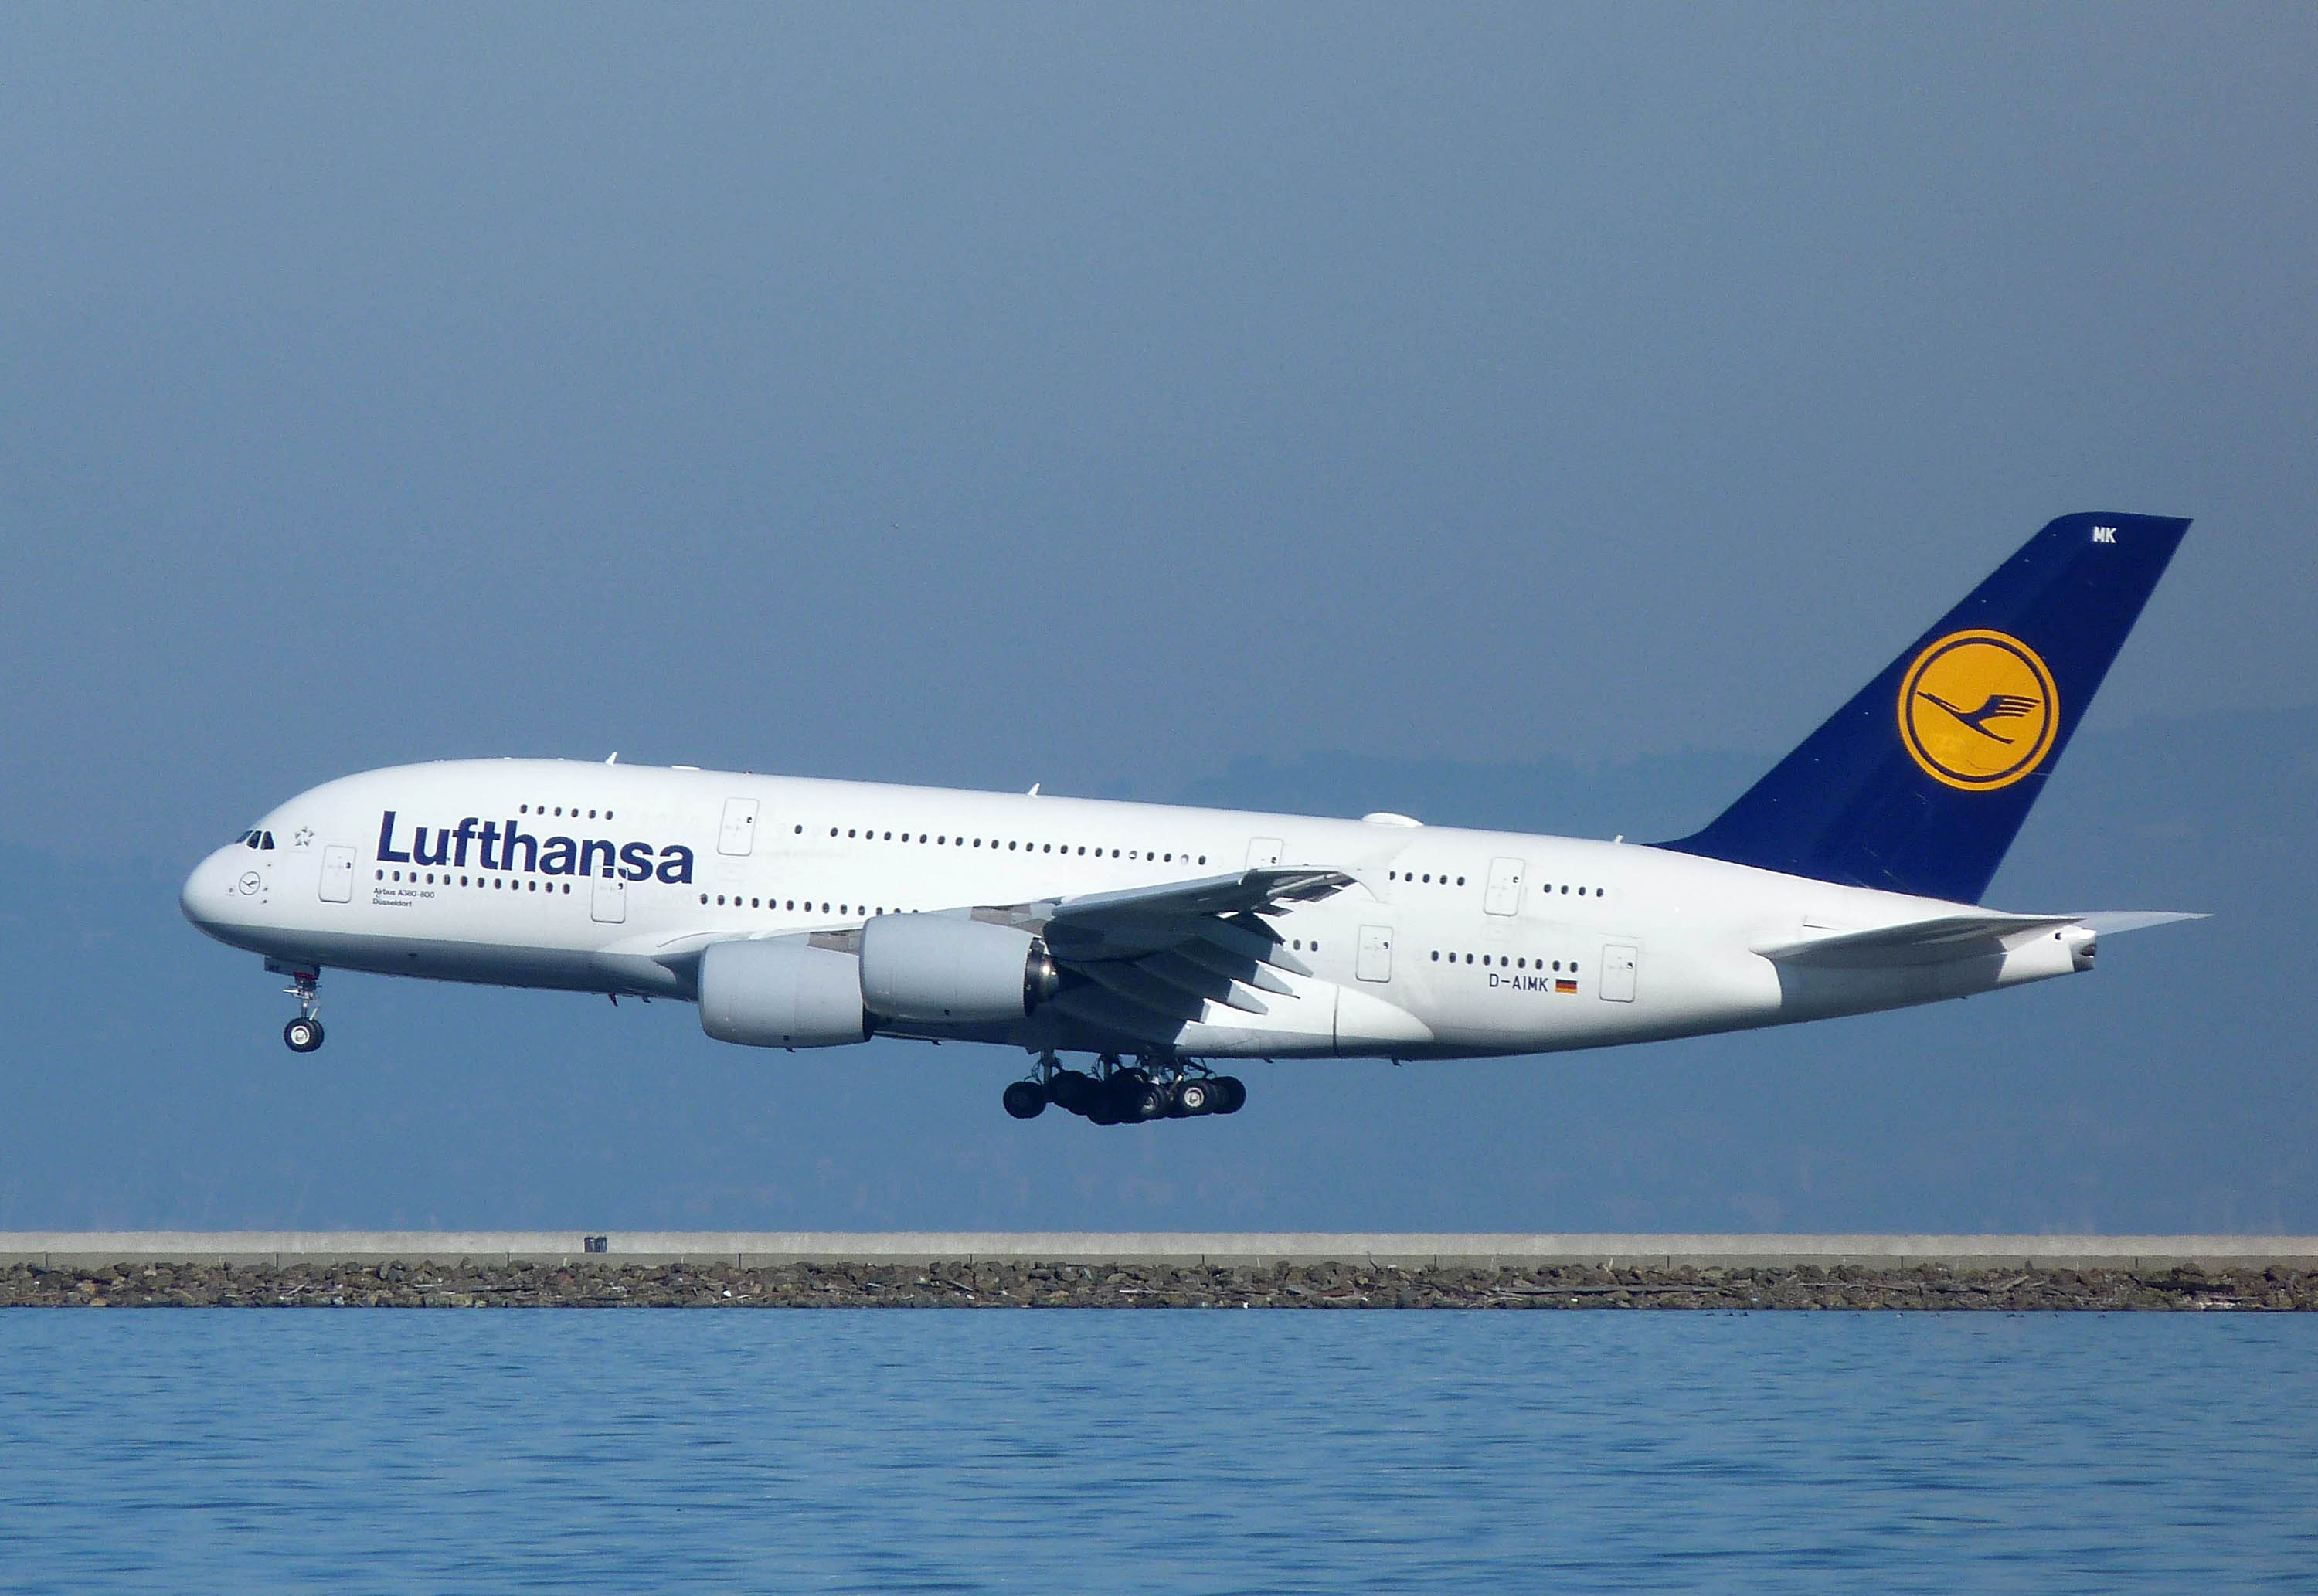 file lufthansa airbus a380 800 d wikimedia commons. Black Bedroom Furniture Sets. Home Design Ideas